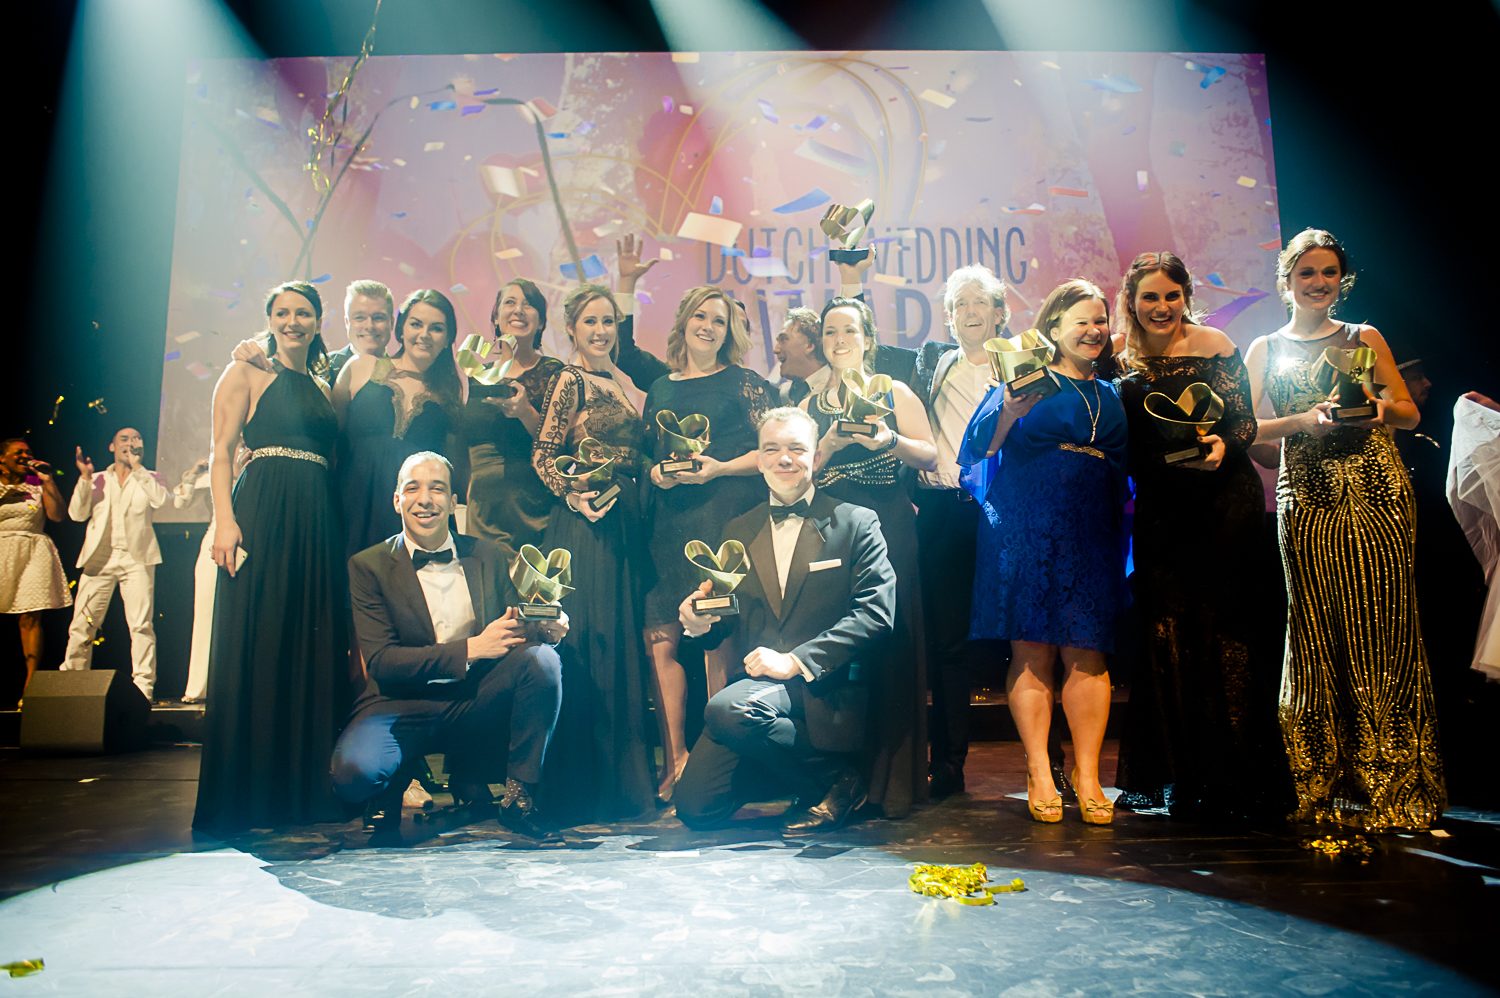 entertainment Dutch Wedding awards 2017